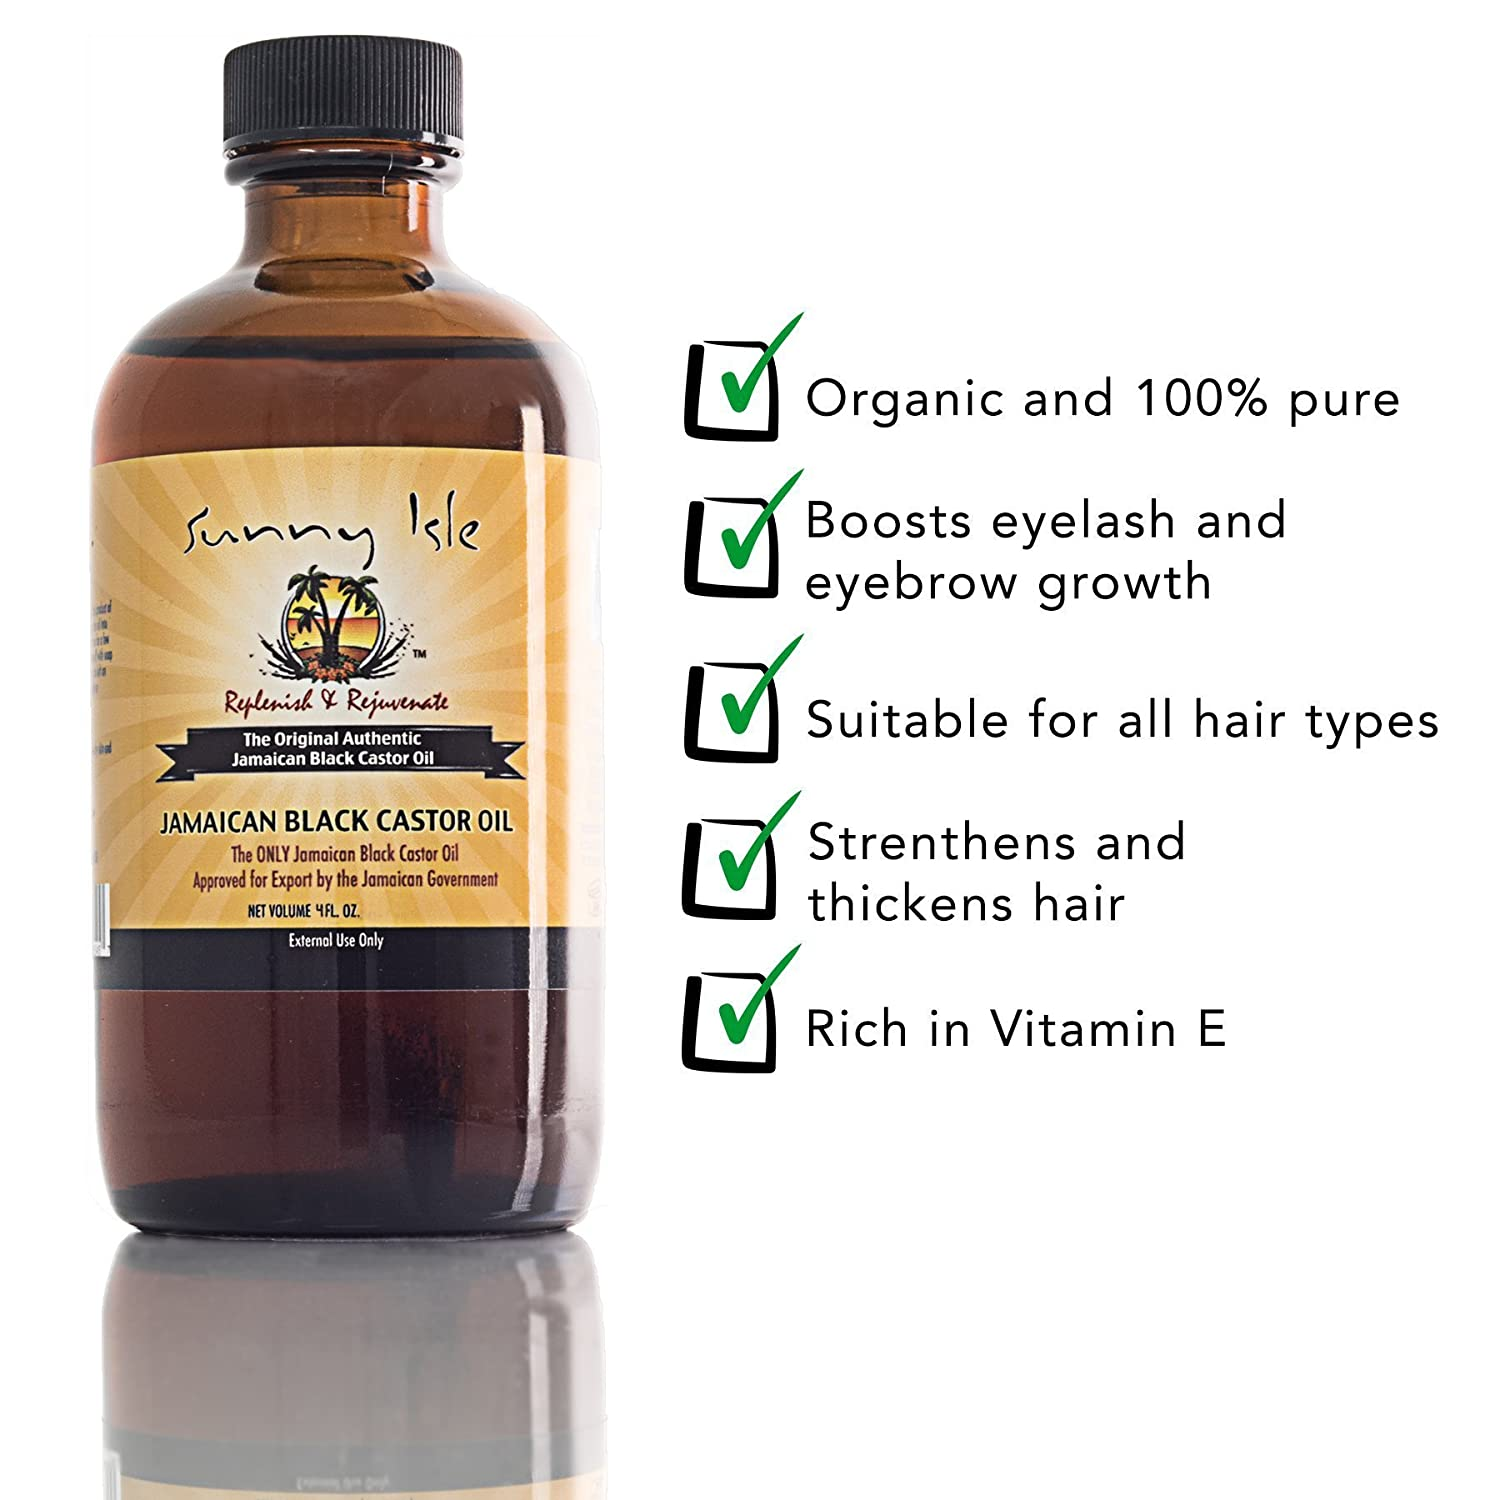 Jamaican Black Castor Oil With 10 Applicator Brushes Incredible